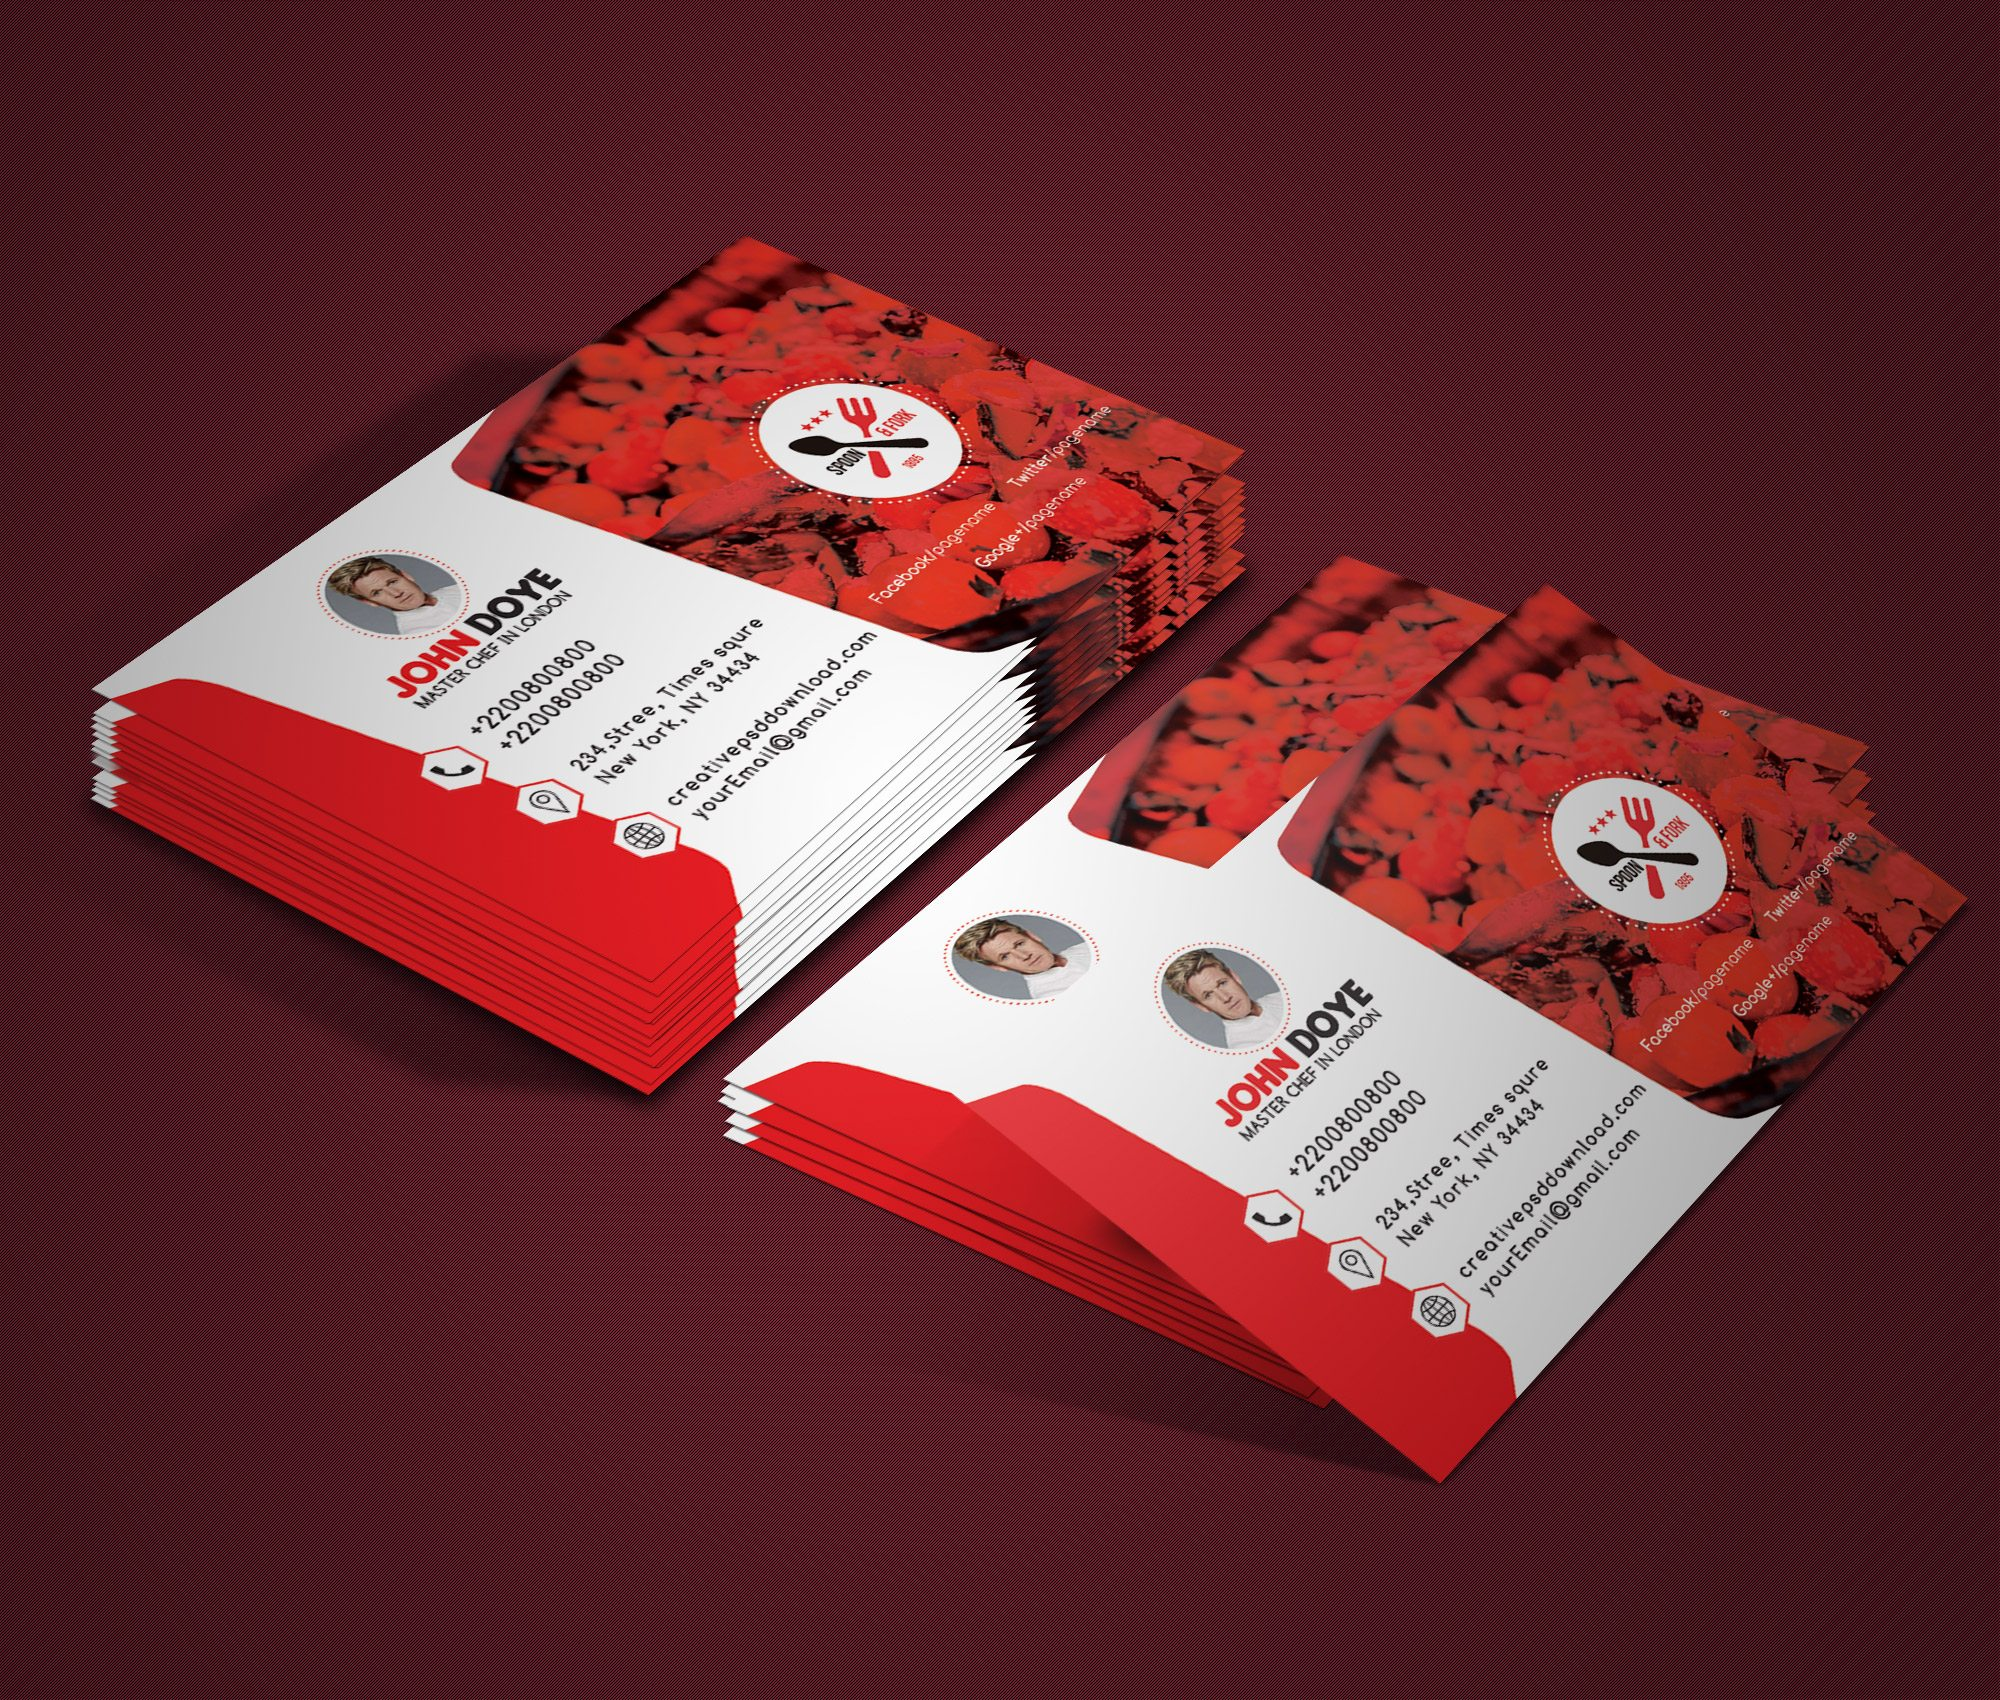 creative business cards for chefs,catering business cards templates free download,chef business cards templates free,food business cards psd,catering visiting card matter,catering business card templates psd,best chef business cards,catering business card vector,